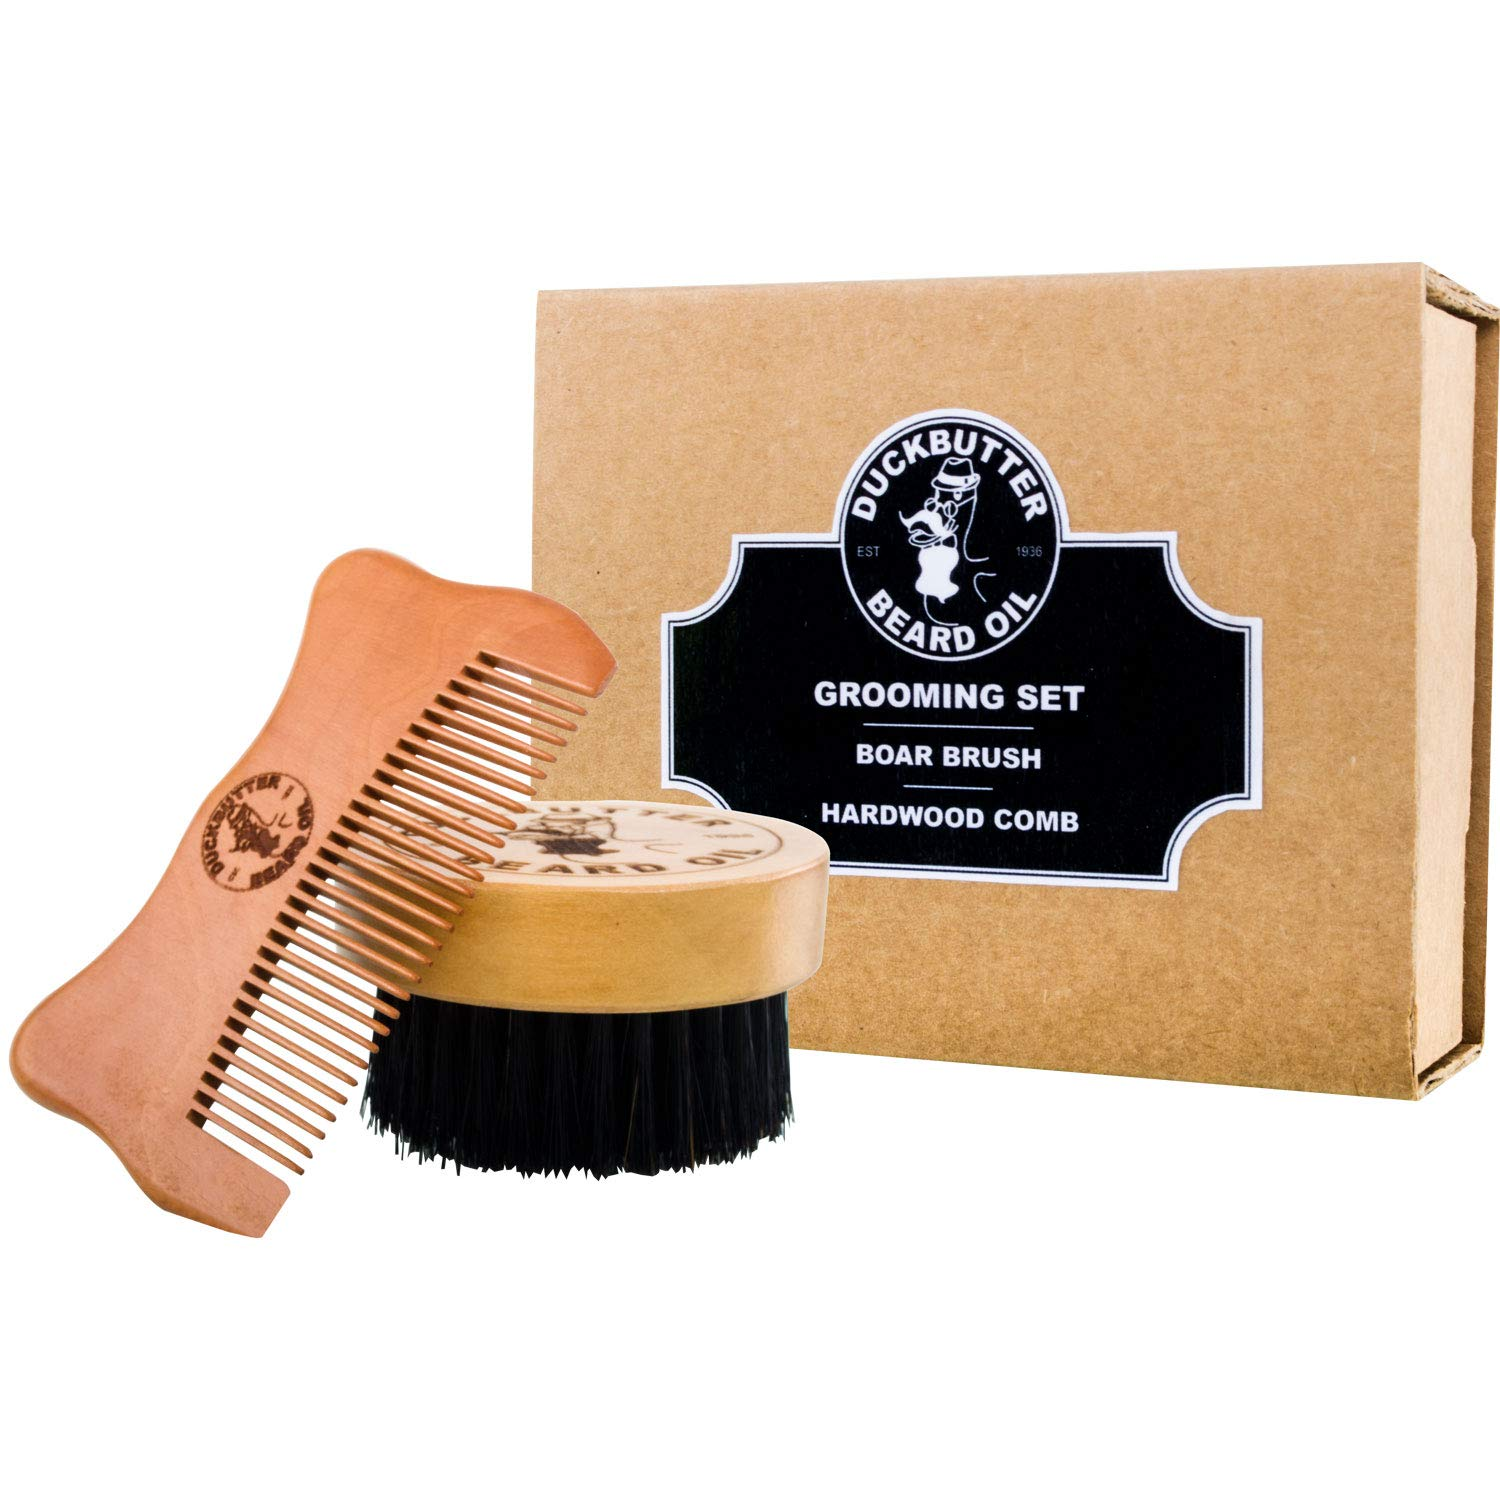 DUCKBUTTER Grooming Set - Beard Brush & Comb Boxed Gift Set - Made from 100% Genuine Peach Wood & Natural Boar Bristles – 2.25 cm Bristles & Teeth for Facial Grooming Rexx Labs RL-DB-BCS